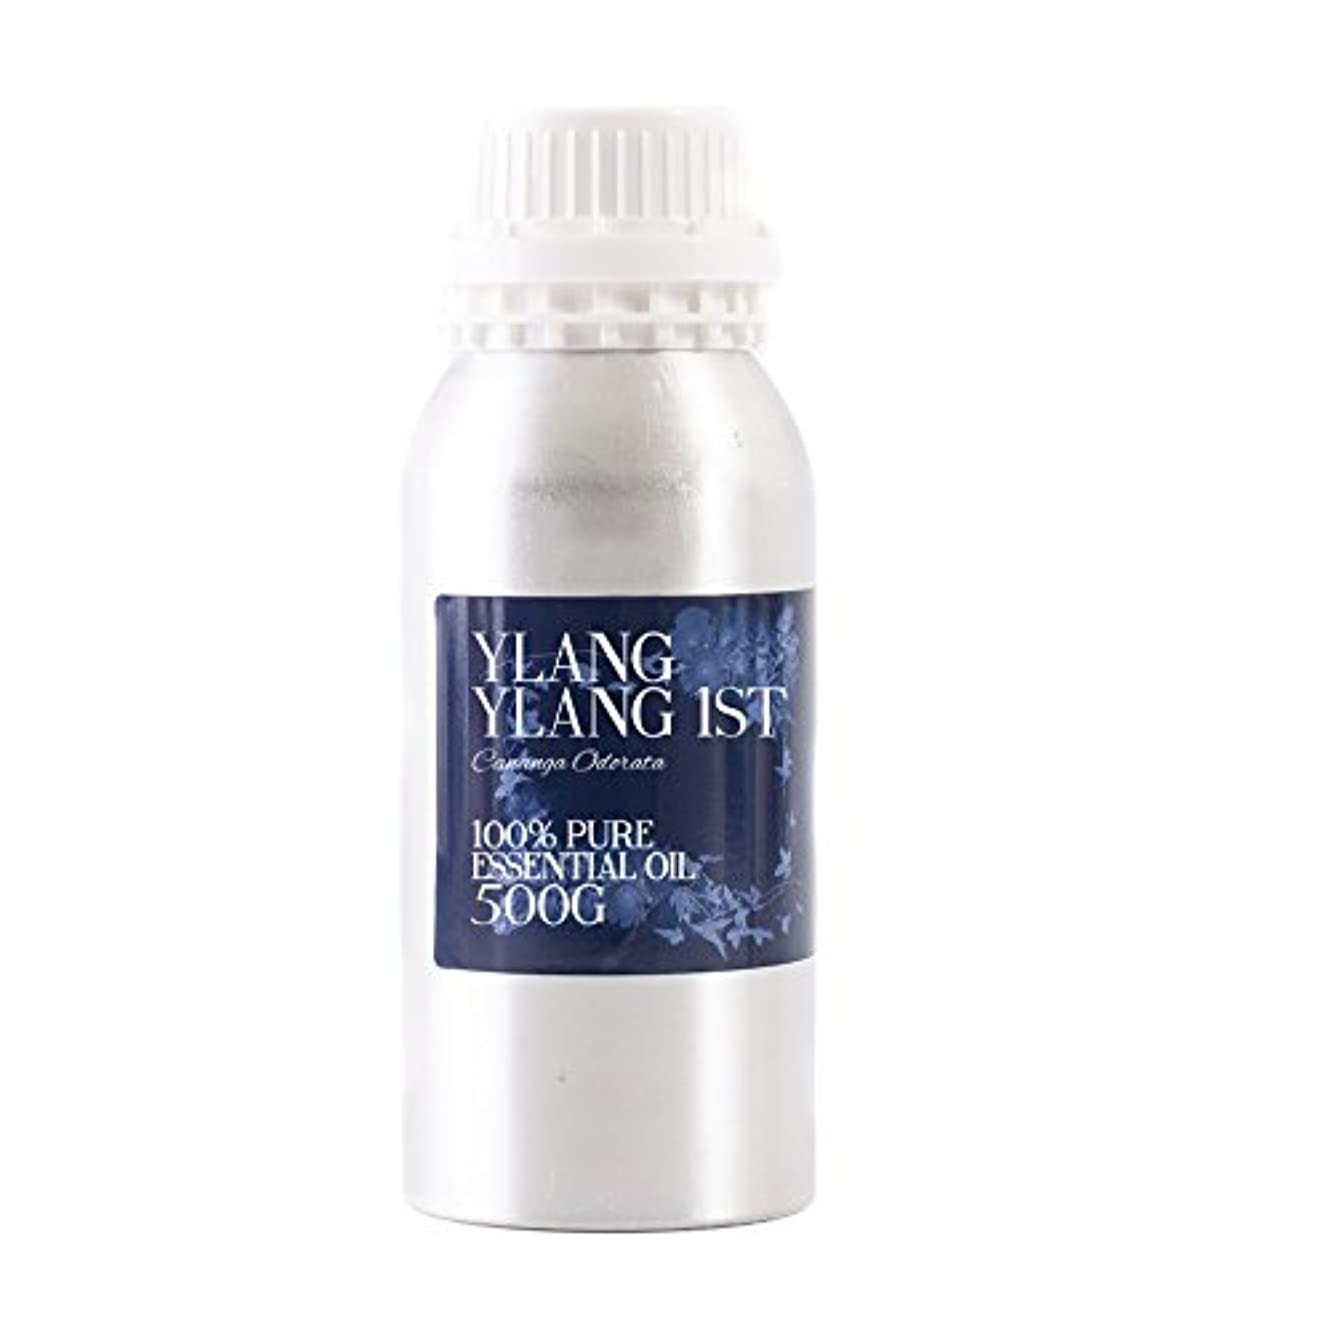 Mystic Moments | Ylang Ylang 1st Essential Oil - 500g - 100% Pure